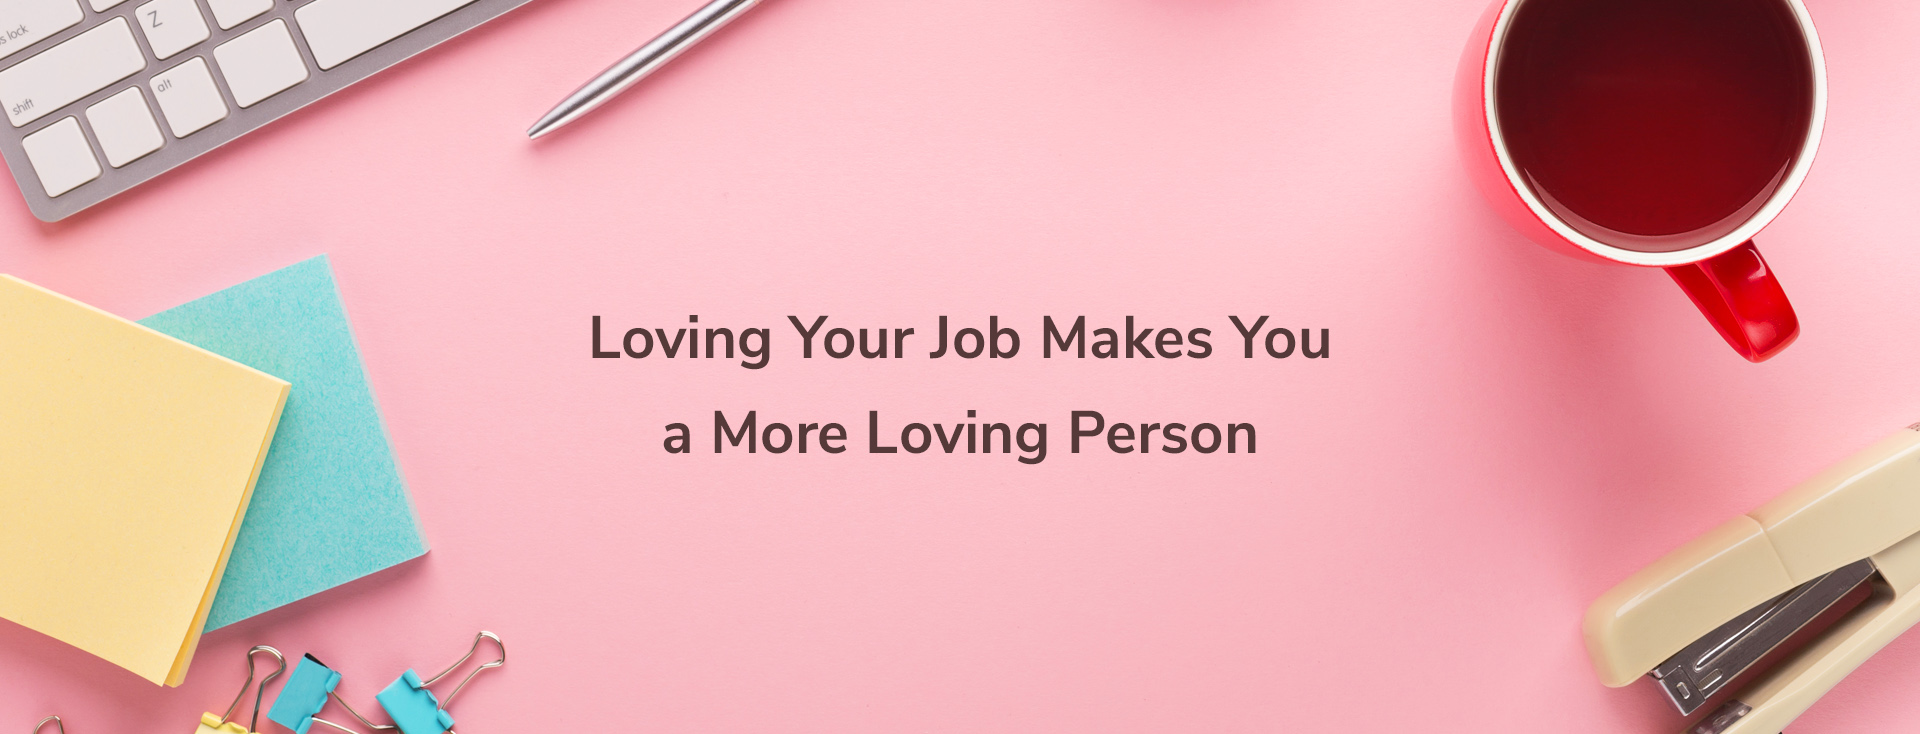 Loving Your Job Makes You a More Loving Person